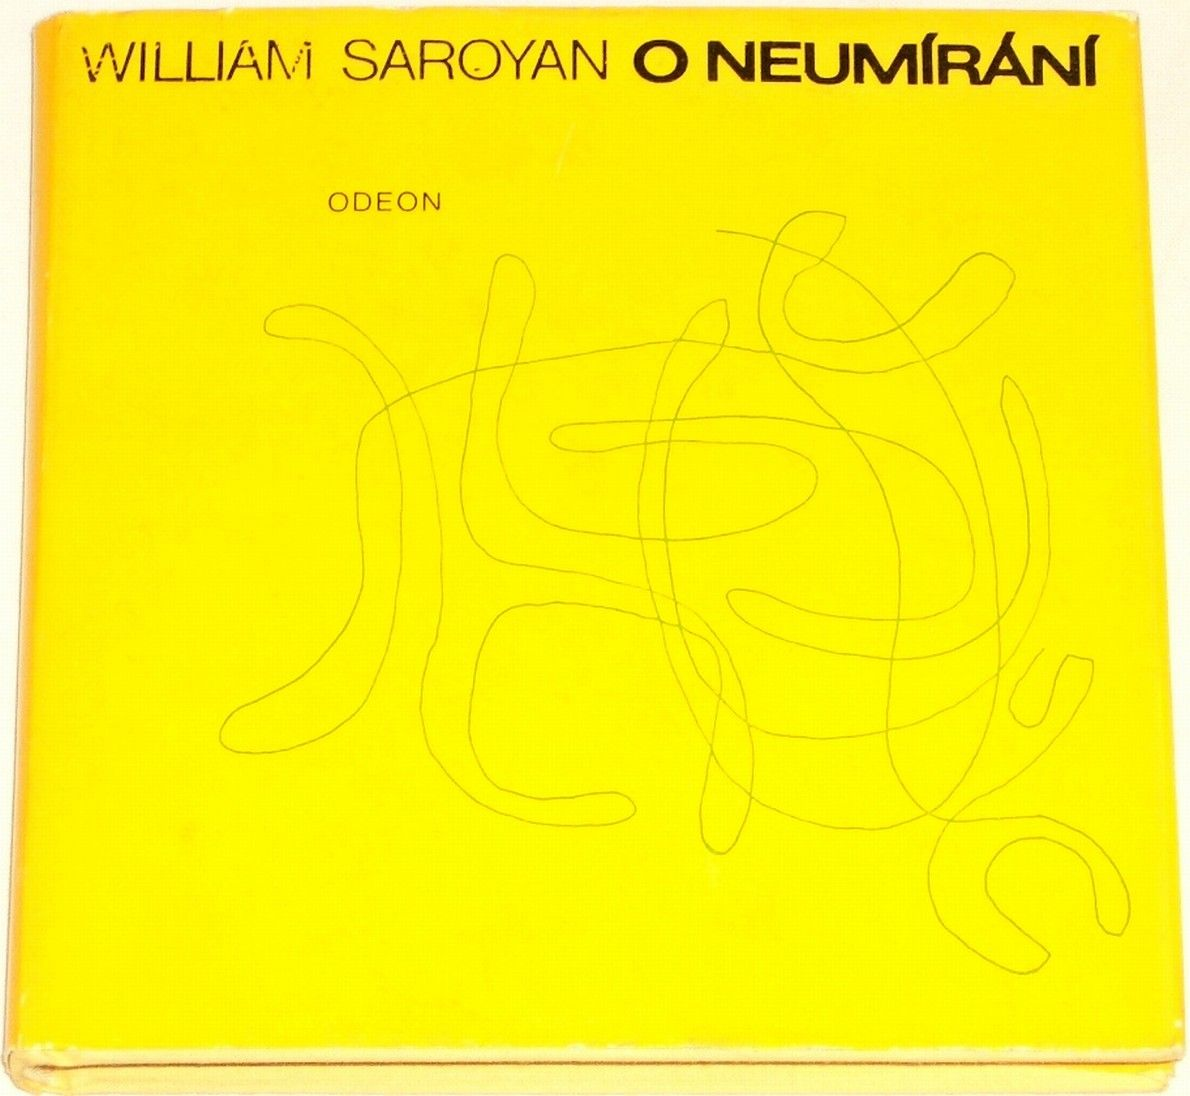 Saroyan William - O neumírání